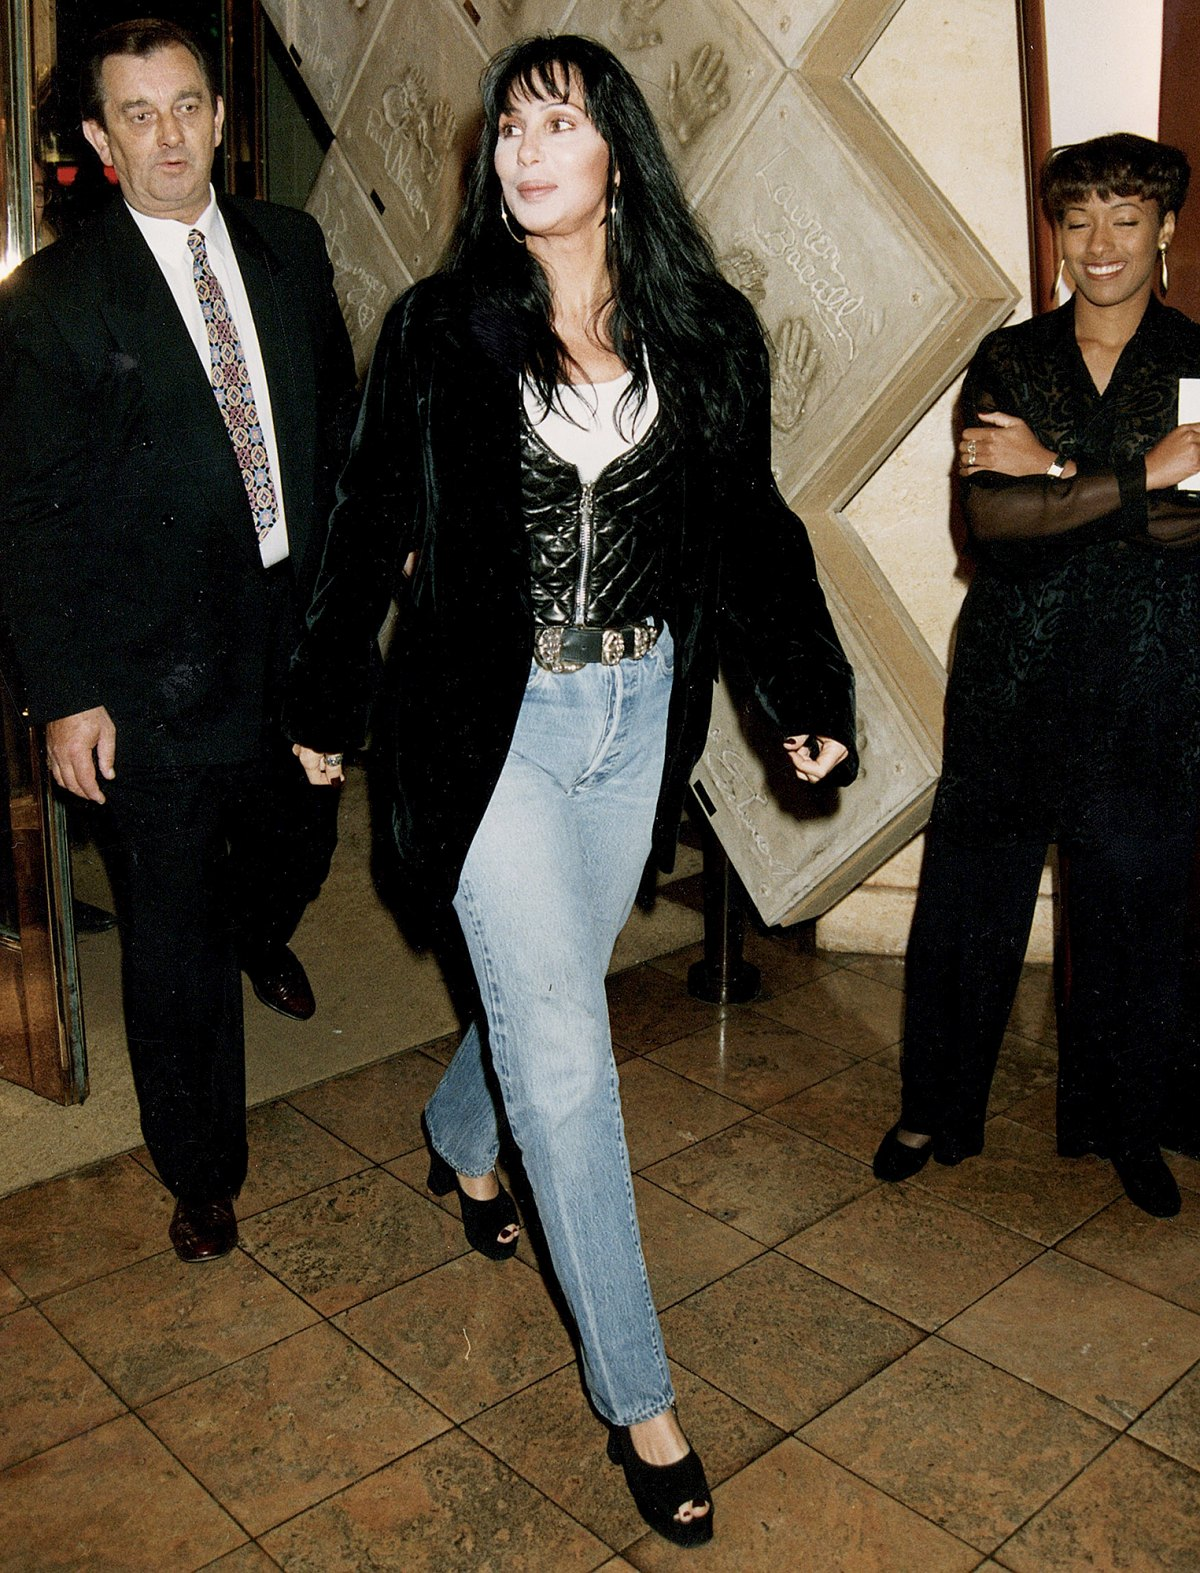 Cher S Style Fashion Evolution Memorable Looks Through The Years